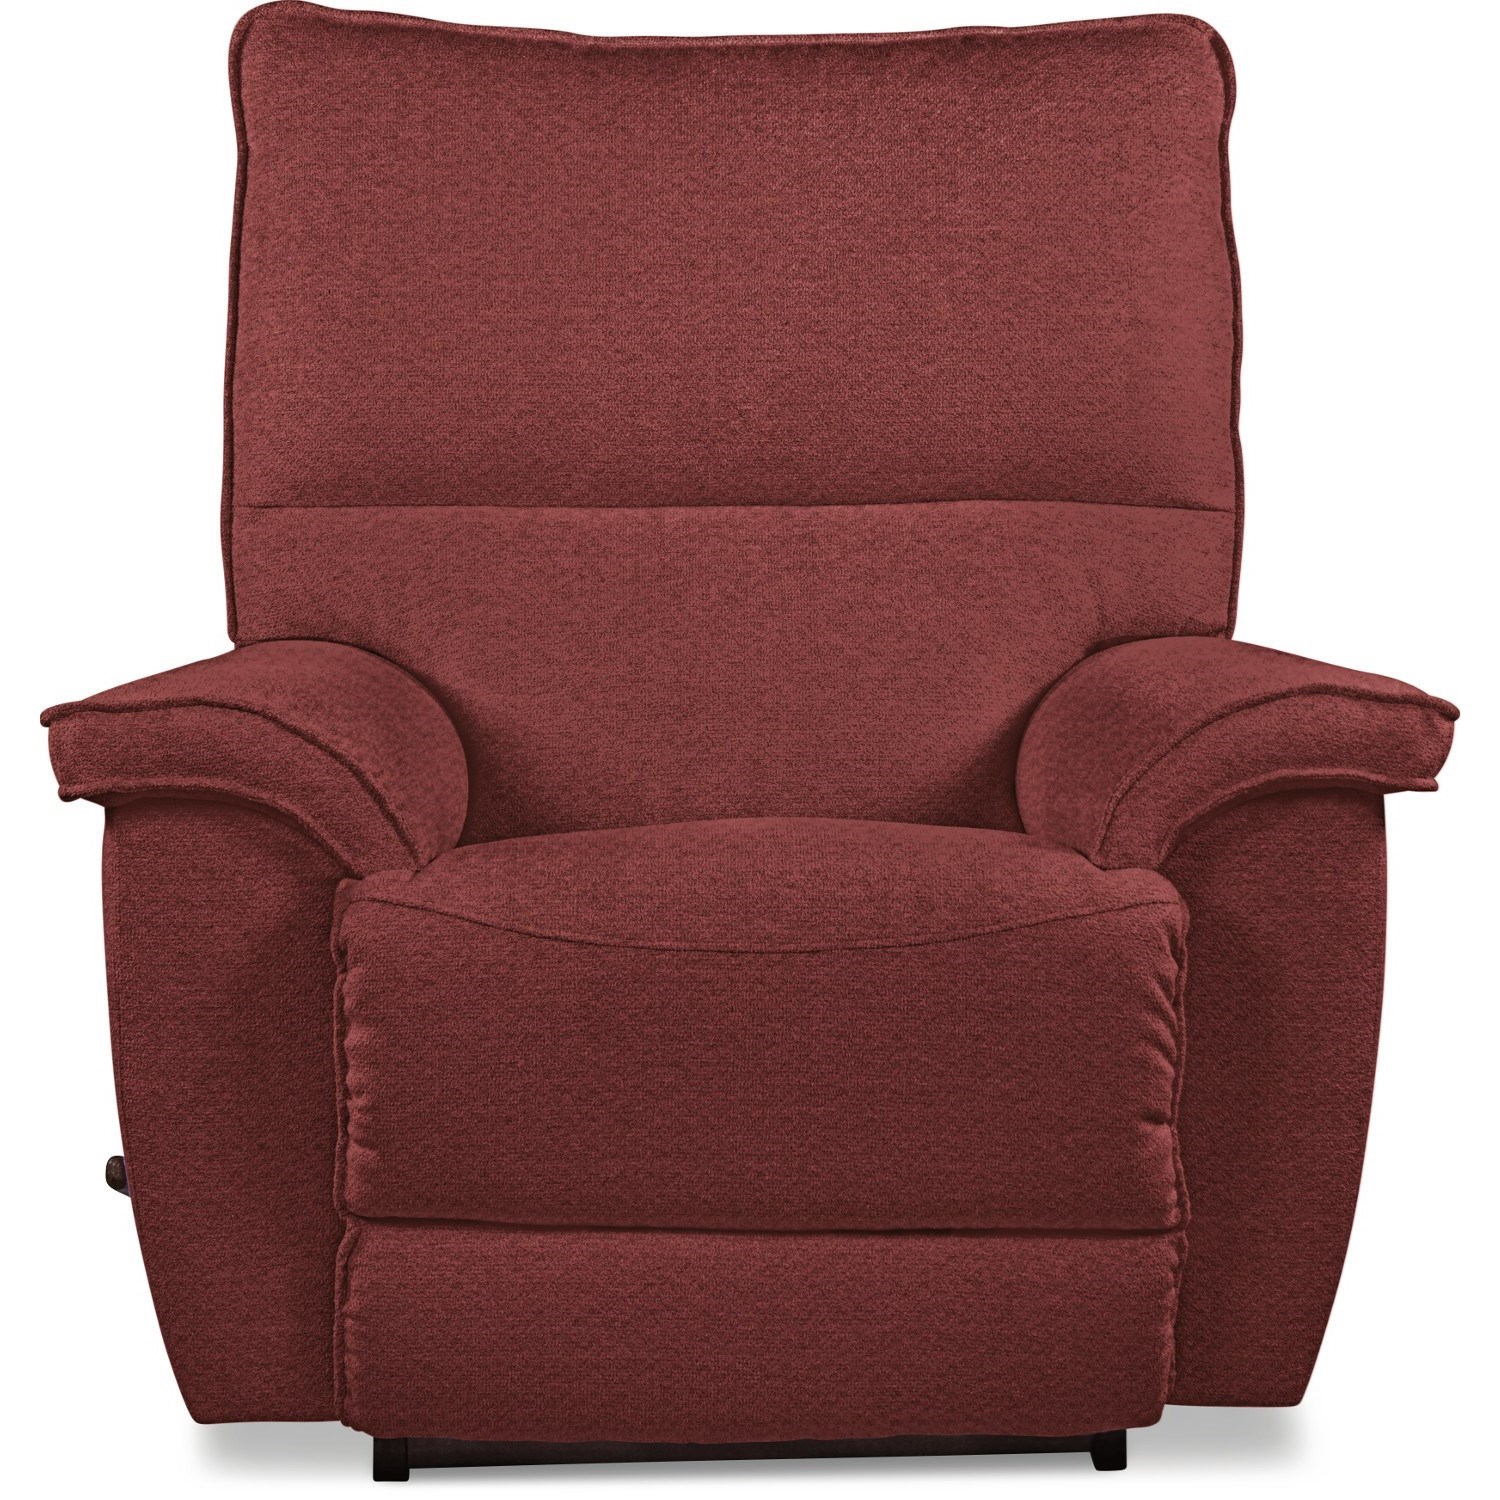 Casual Power-Recline-XRw Wall Saver Recliner with USB Charging Port